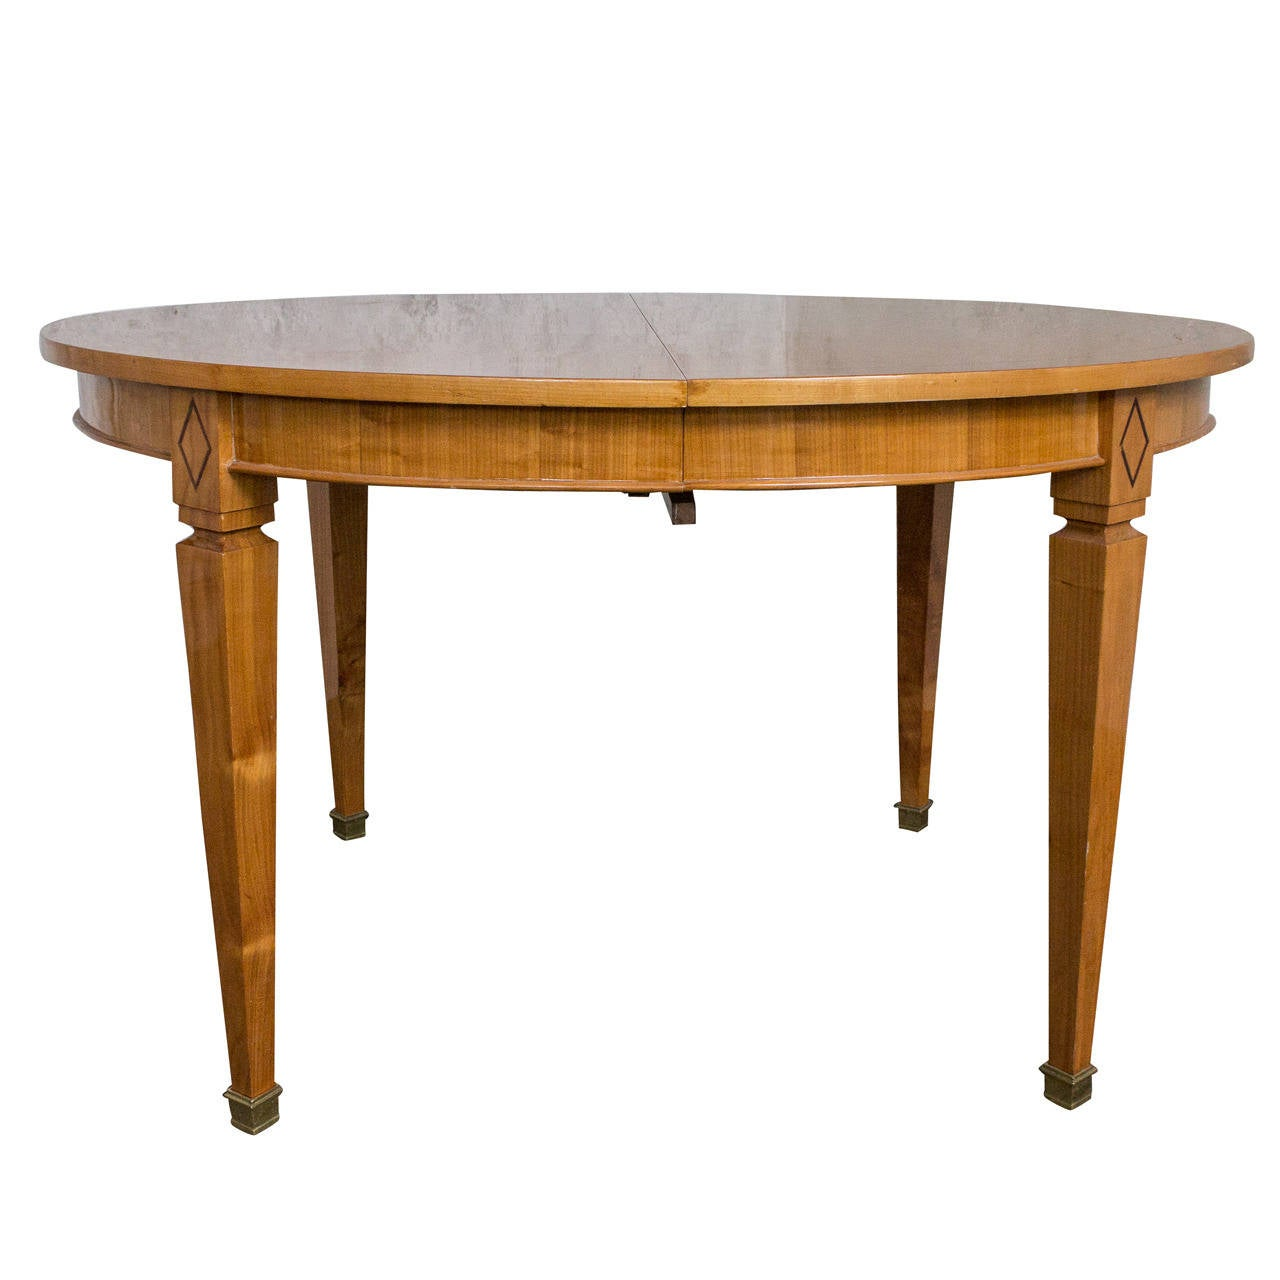 French 1940s oval dining table for sale at 1stdibs Oval dining table